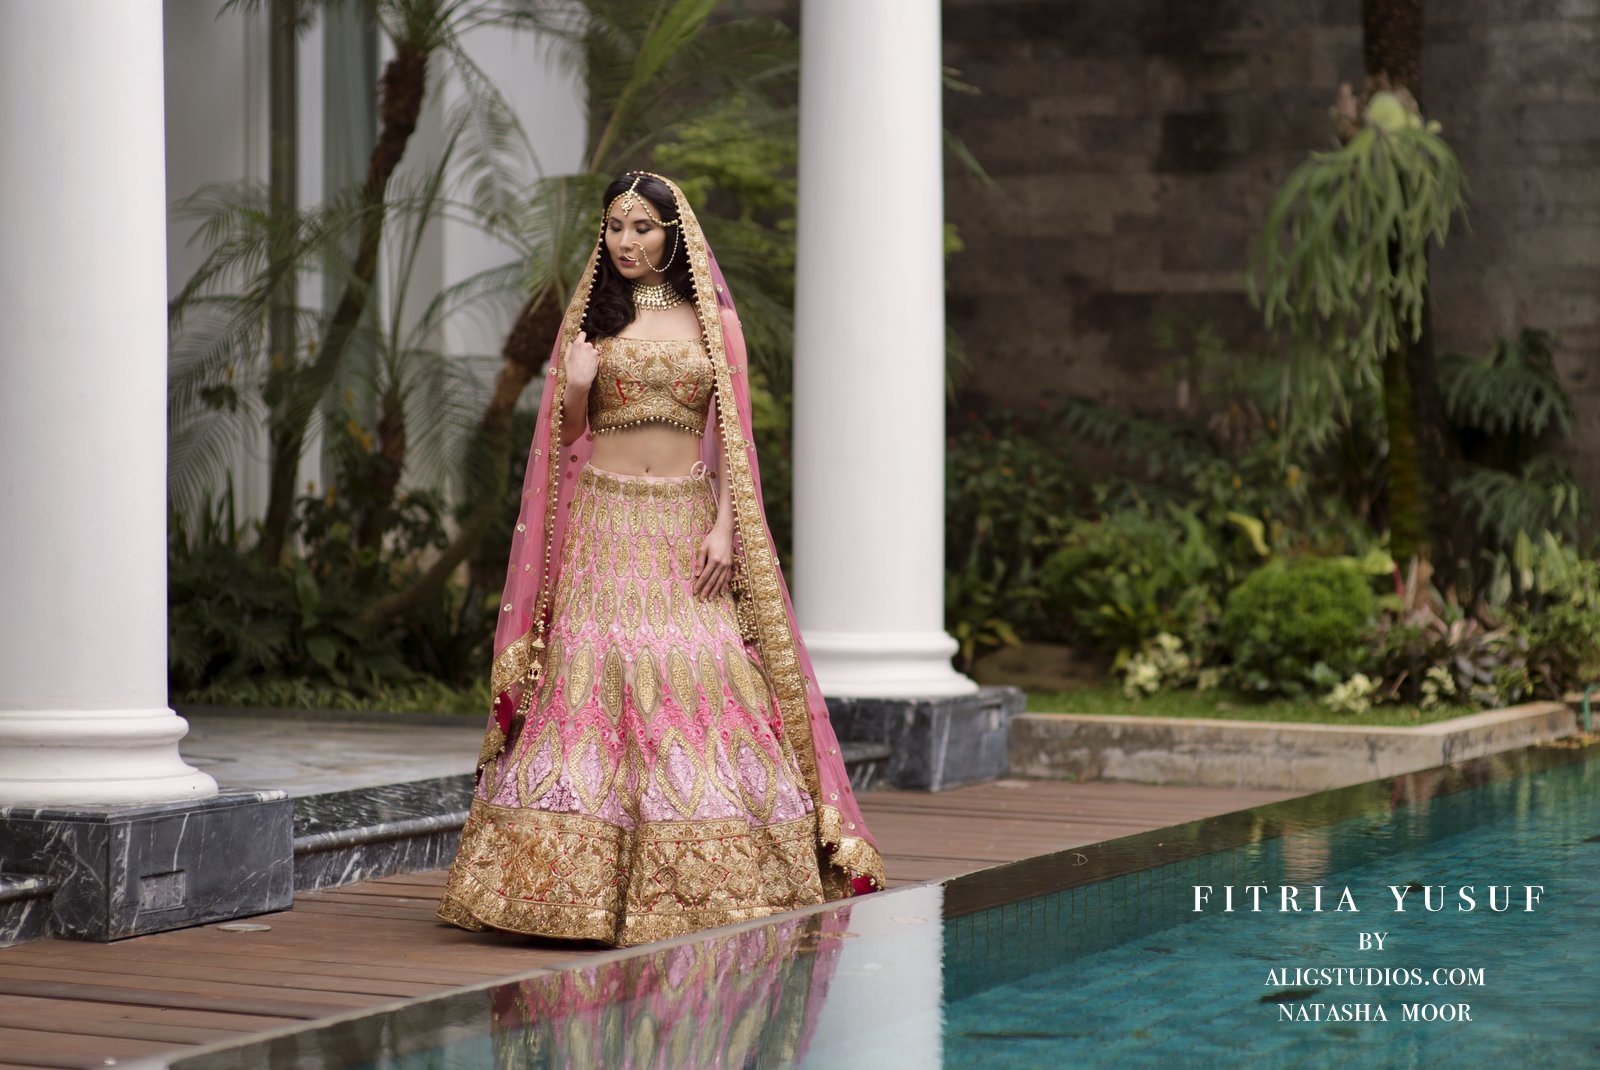 hong kong wedding photographer, hong kong photographer, celebrity photographer, fitria yusuf indonesia, editorial photography, indian wedding